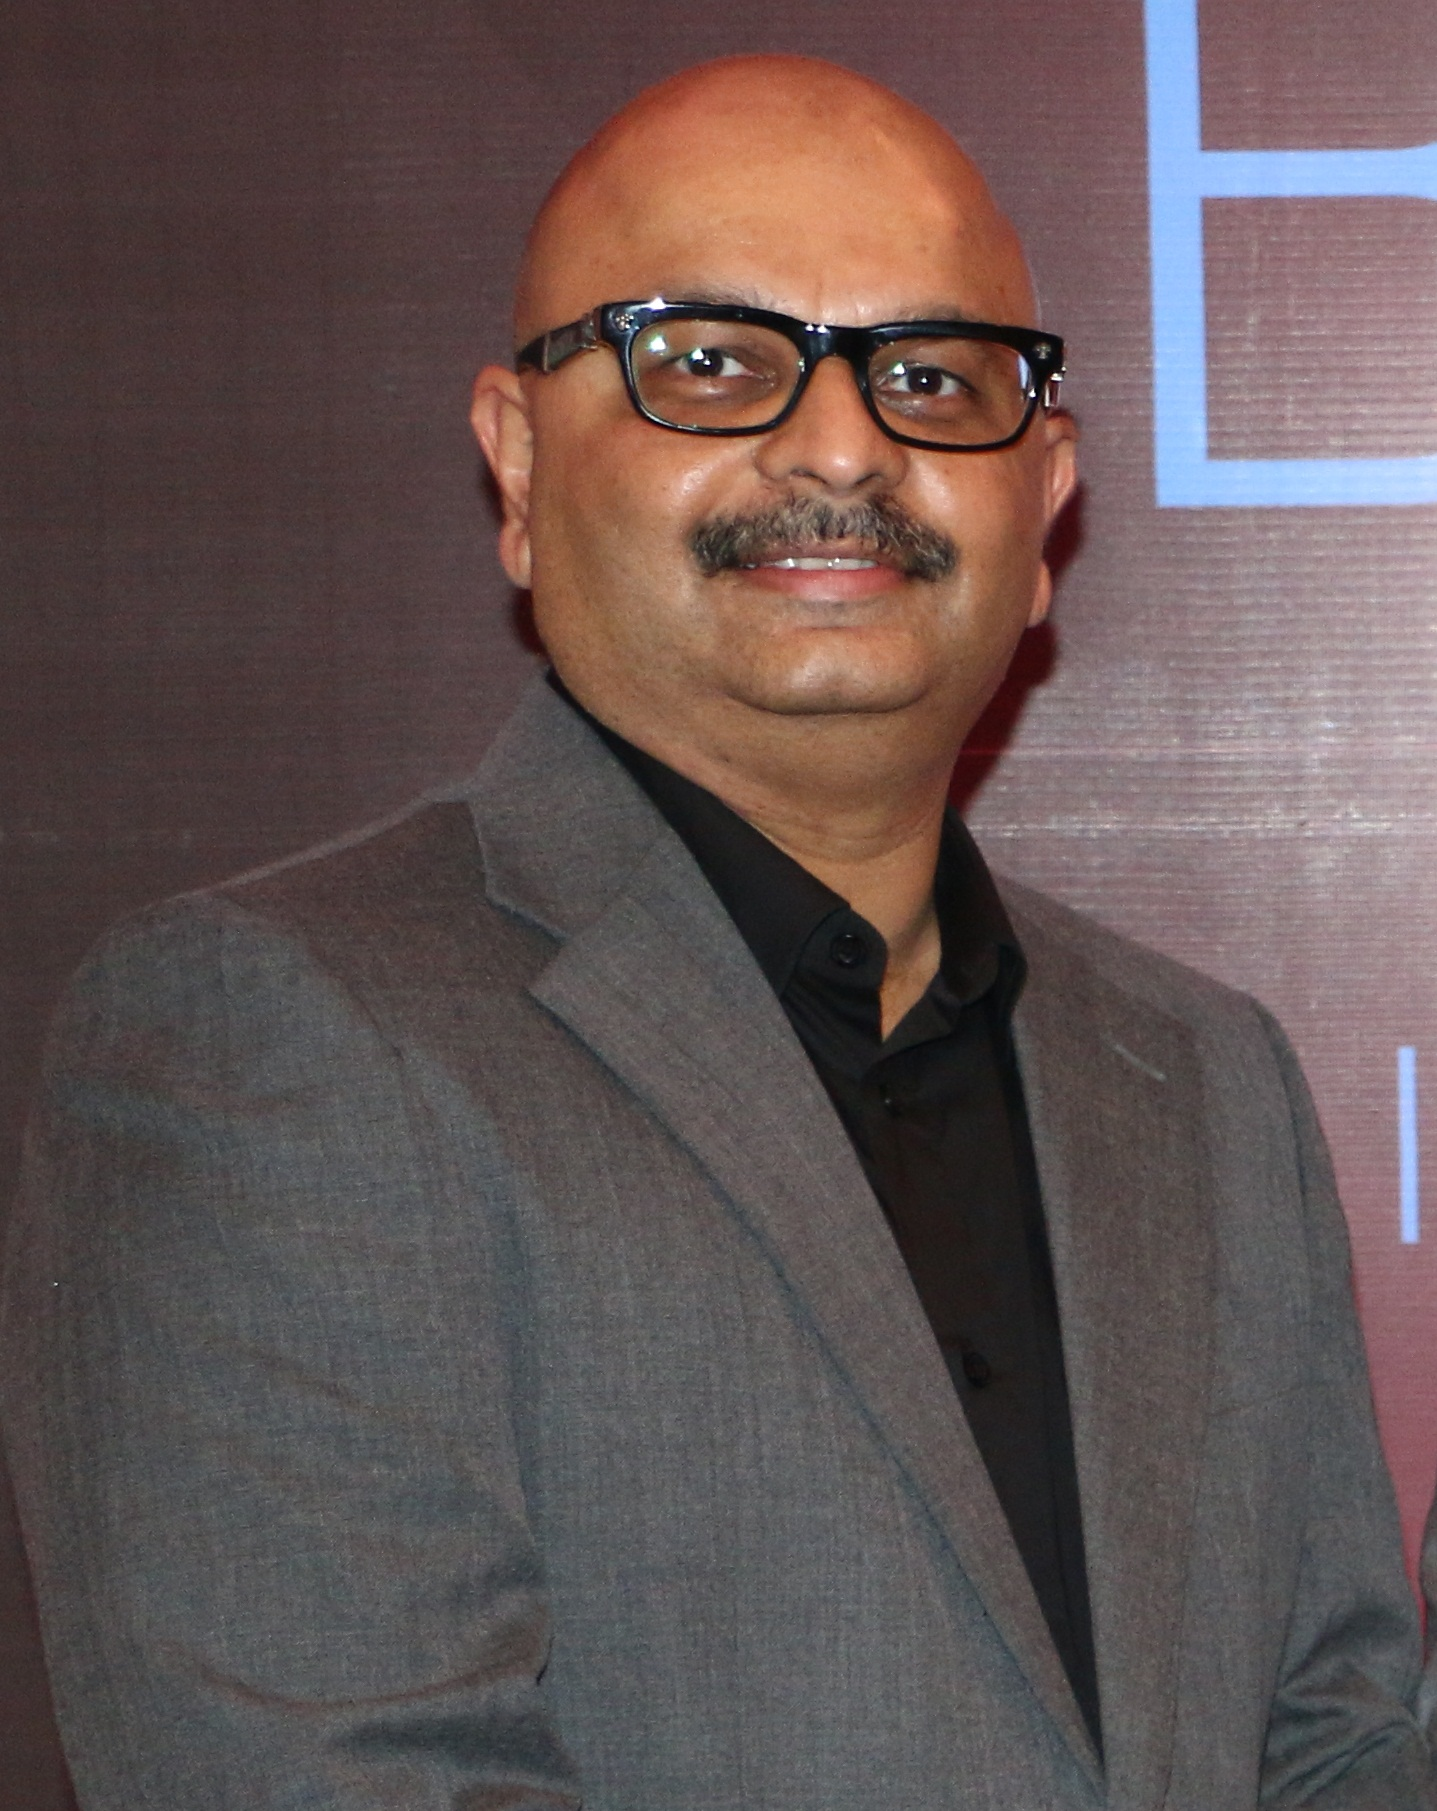 Atithi Patel Executive Director, Ariisto Realtors, Luxury real estate, India real estate news, India property news, Indian realty market, NRI investment, Track2Realty